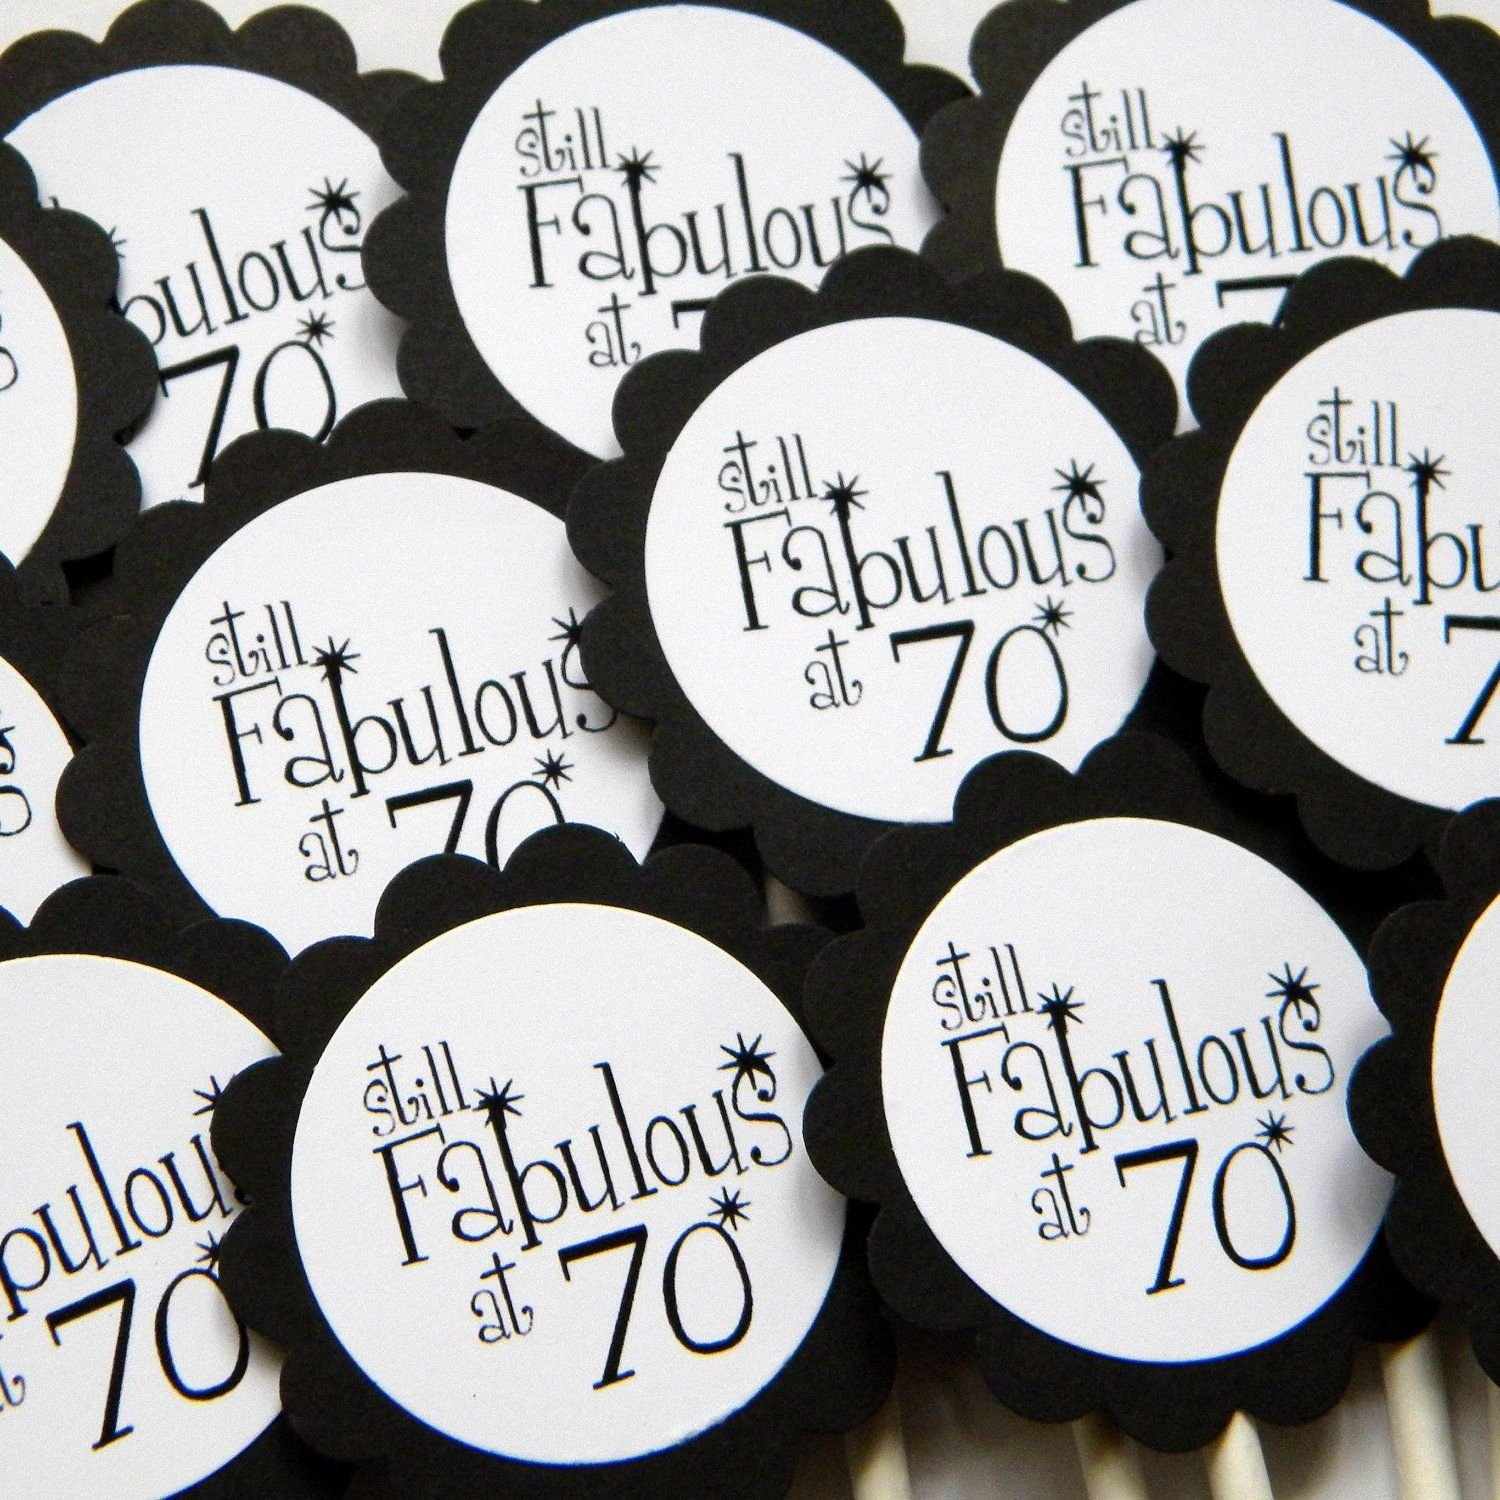 10 Nice Ideas For A 70Th Birthday Party 70th birthday cupcake toppers still fabulous at 70 black and 2021